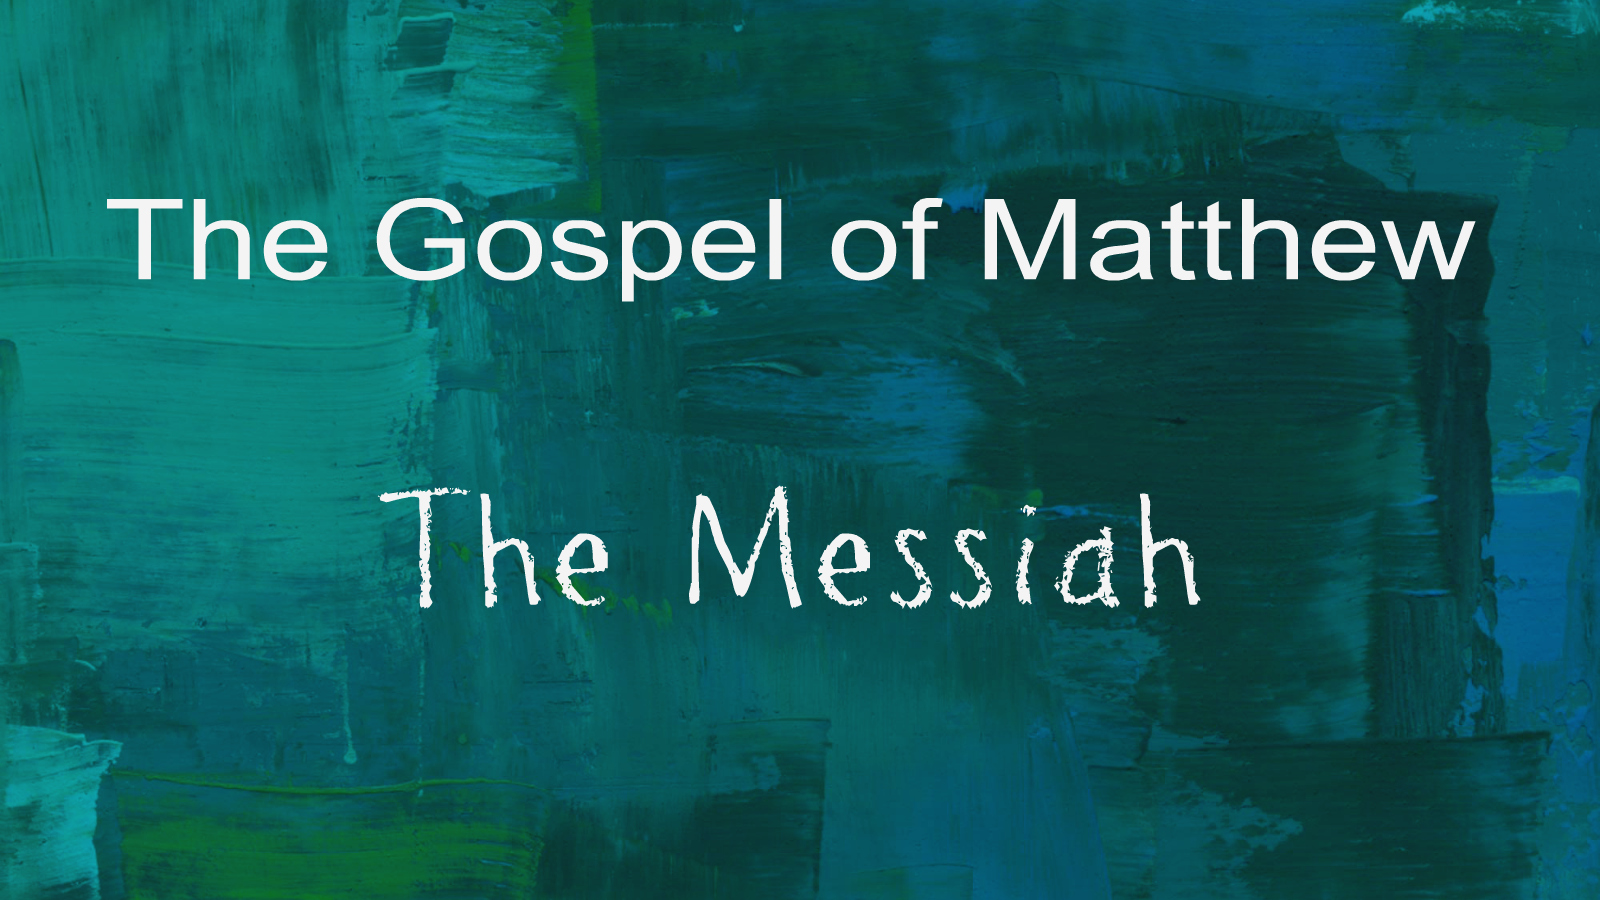 The Gosp of Matt-The Messiah3 2019.jpg